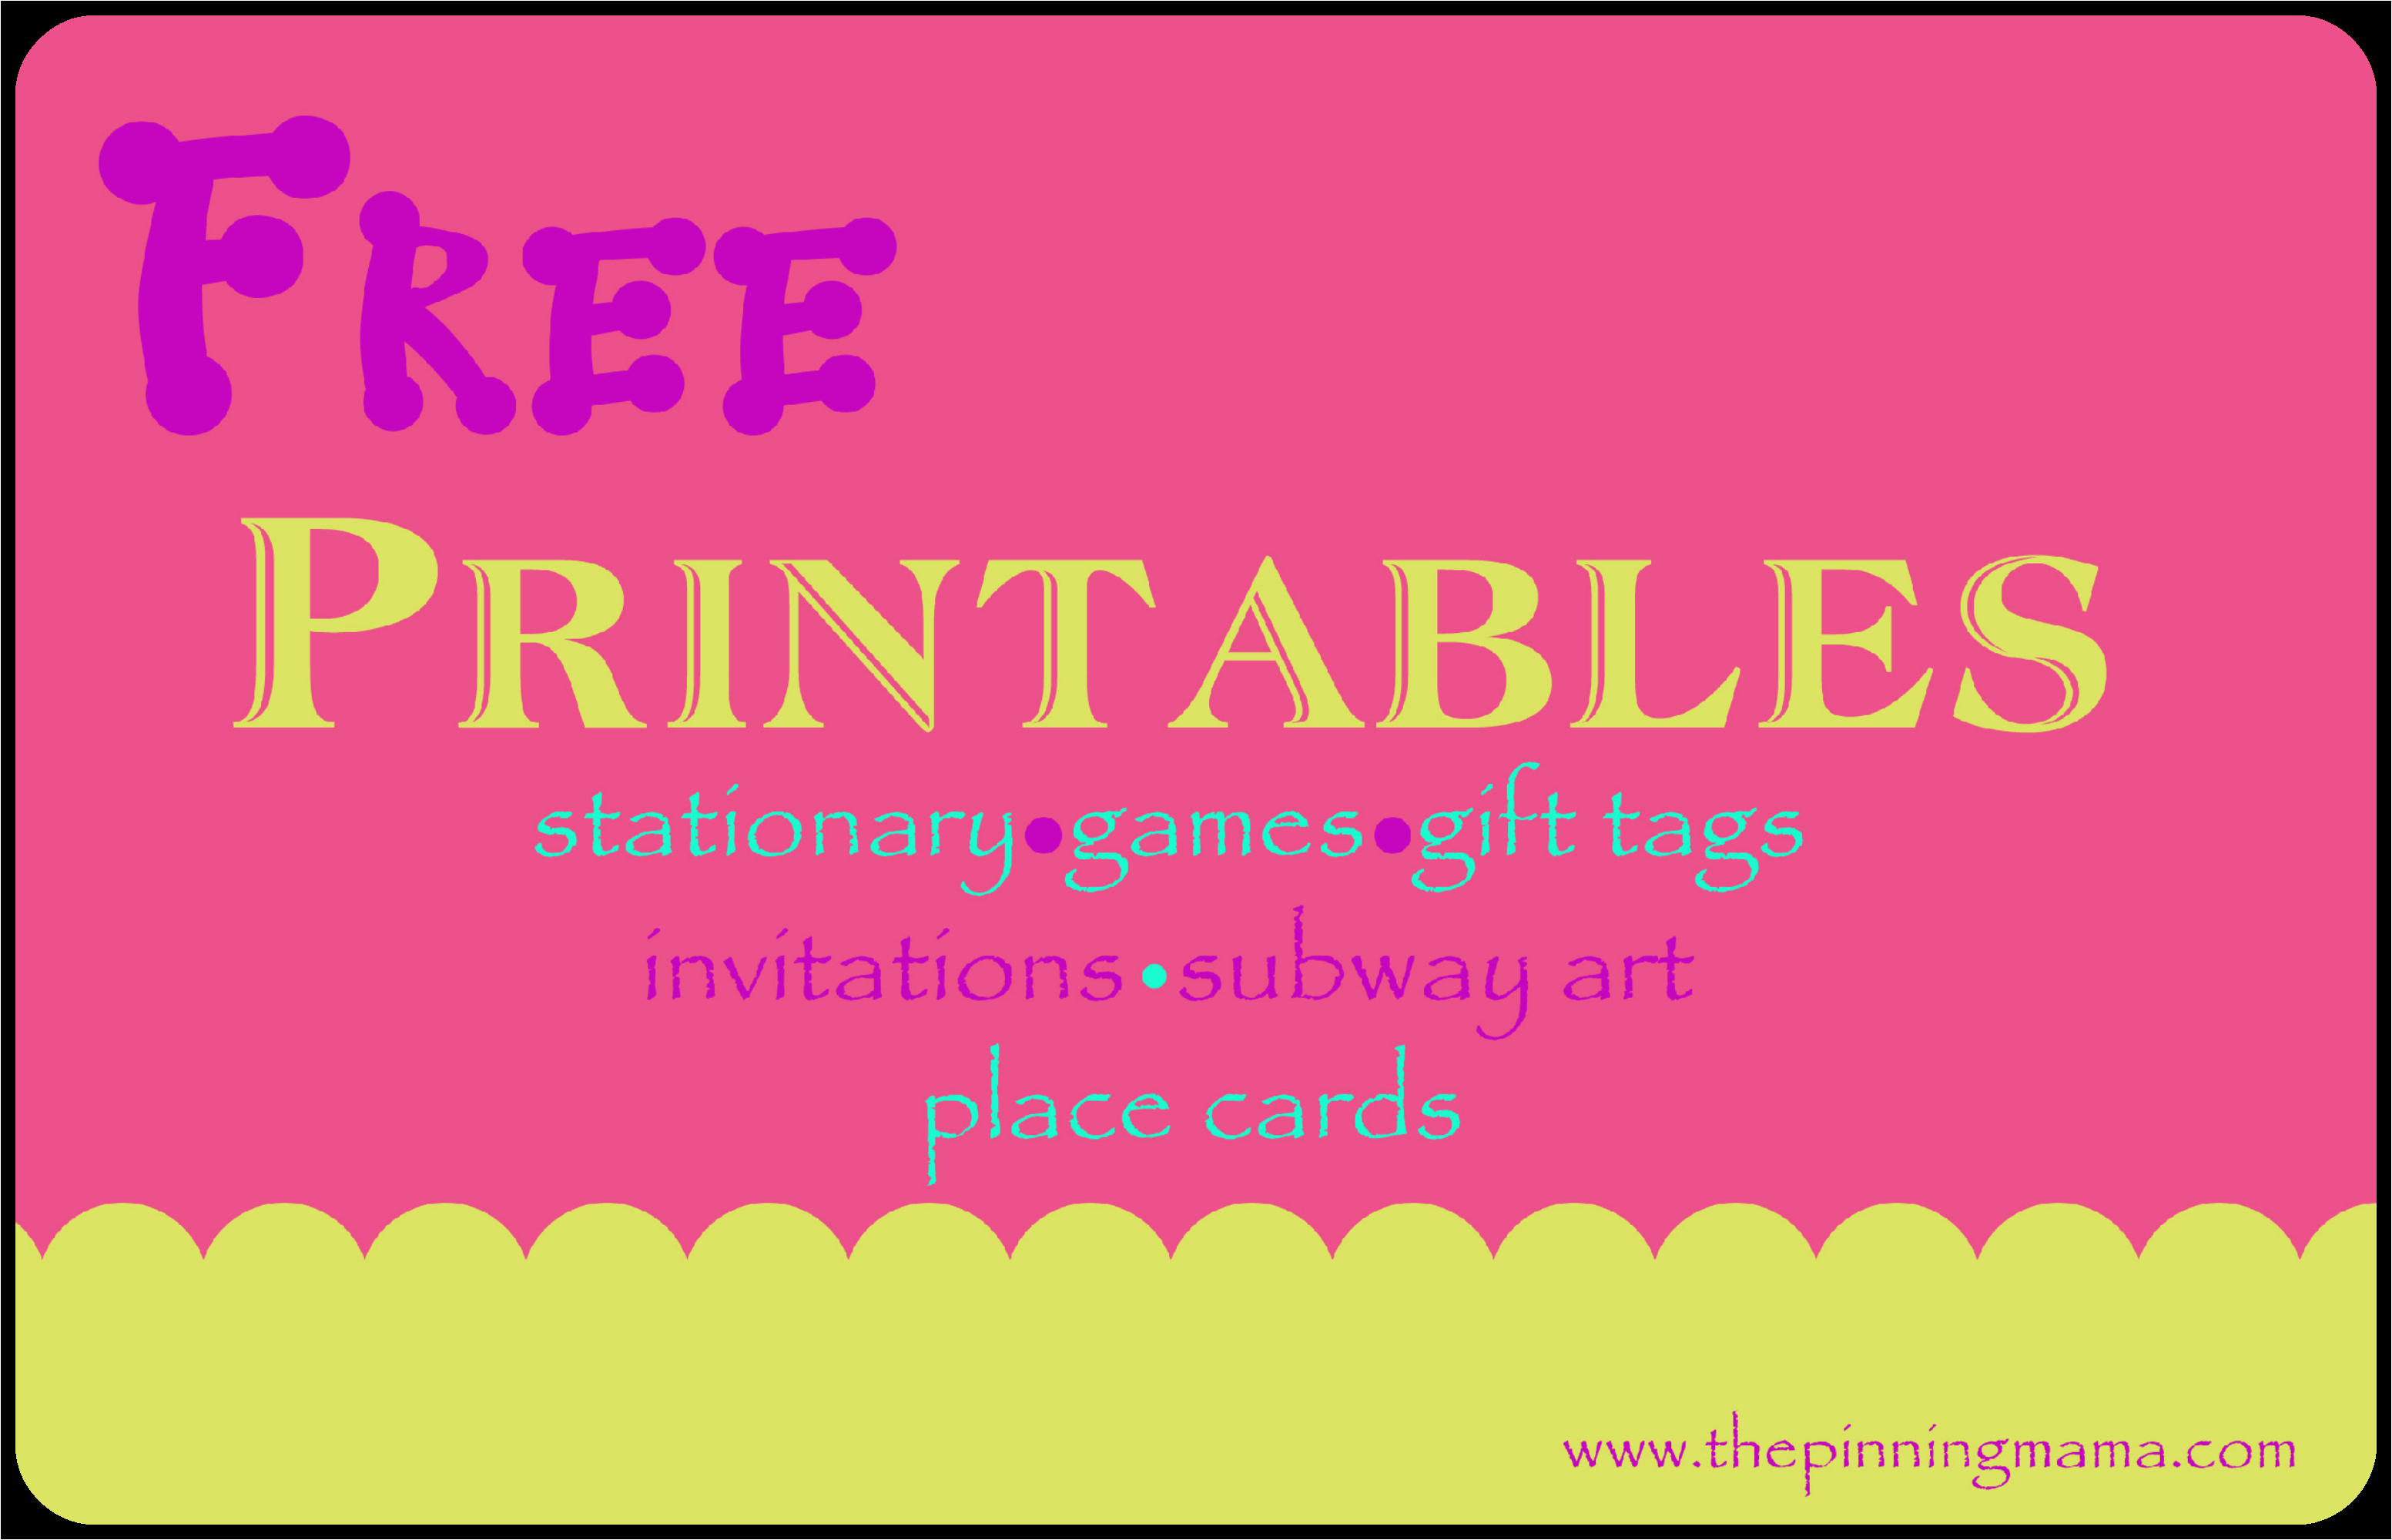 Create Your Own Birthday Invitations Free Online Printable Invitation Cards Templates Vastuuonminun